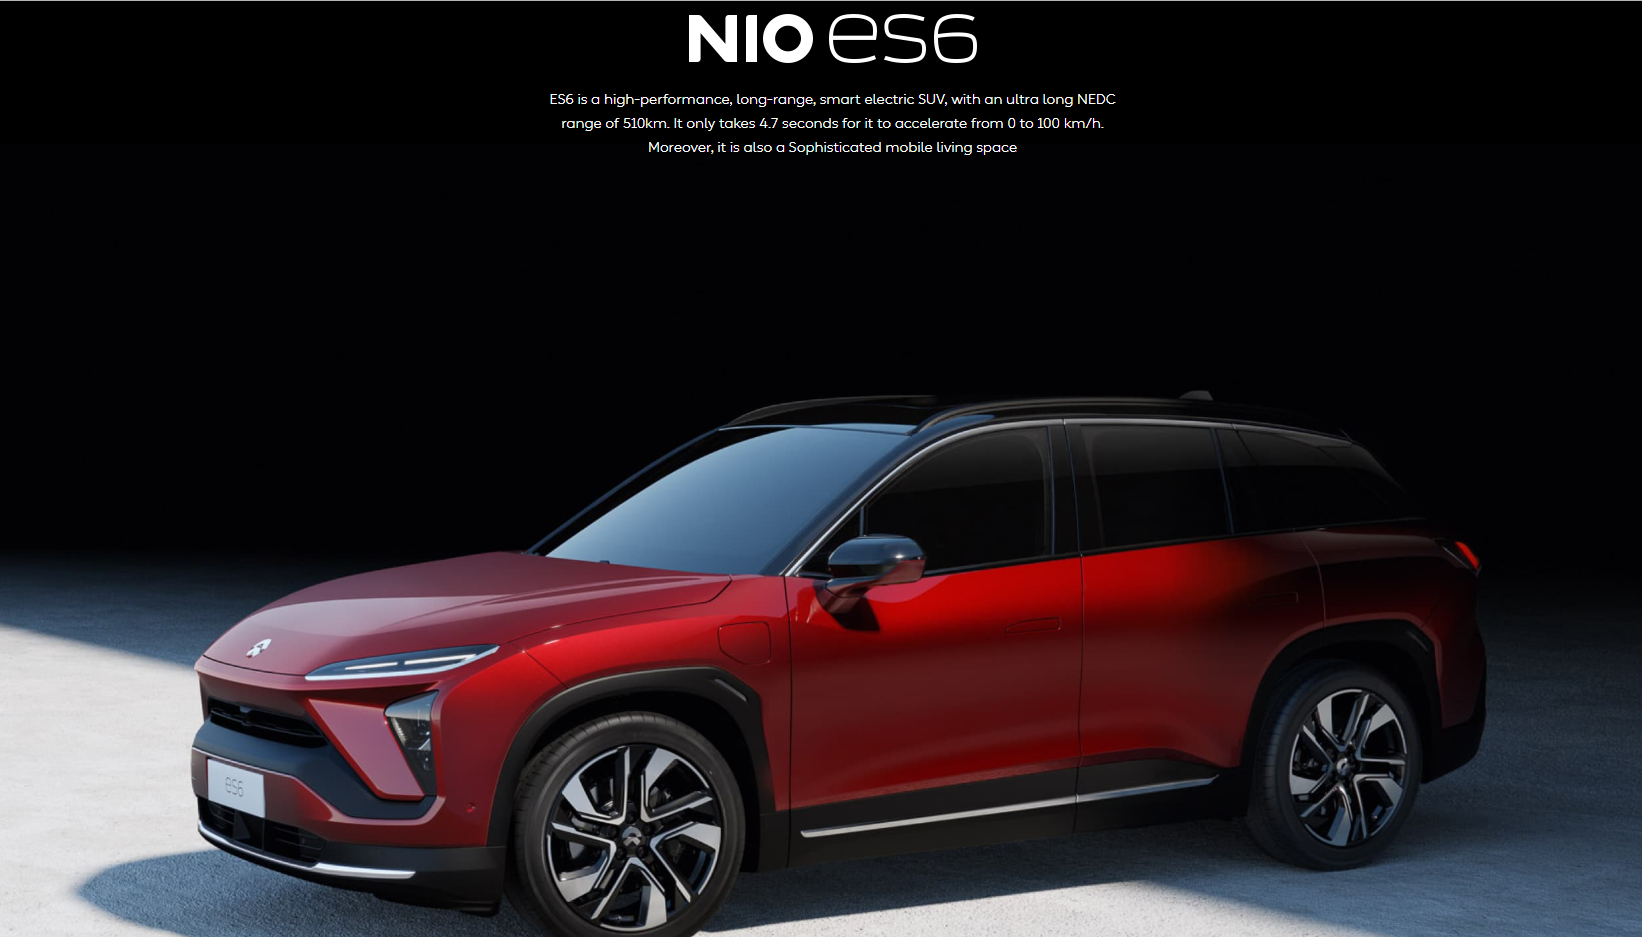 Nio Sales Continue to Climb, Surpassing Projections to More Than 11,000 for 2018